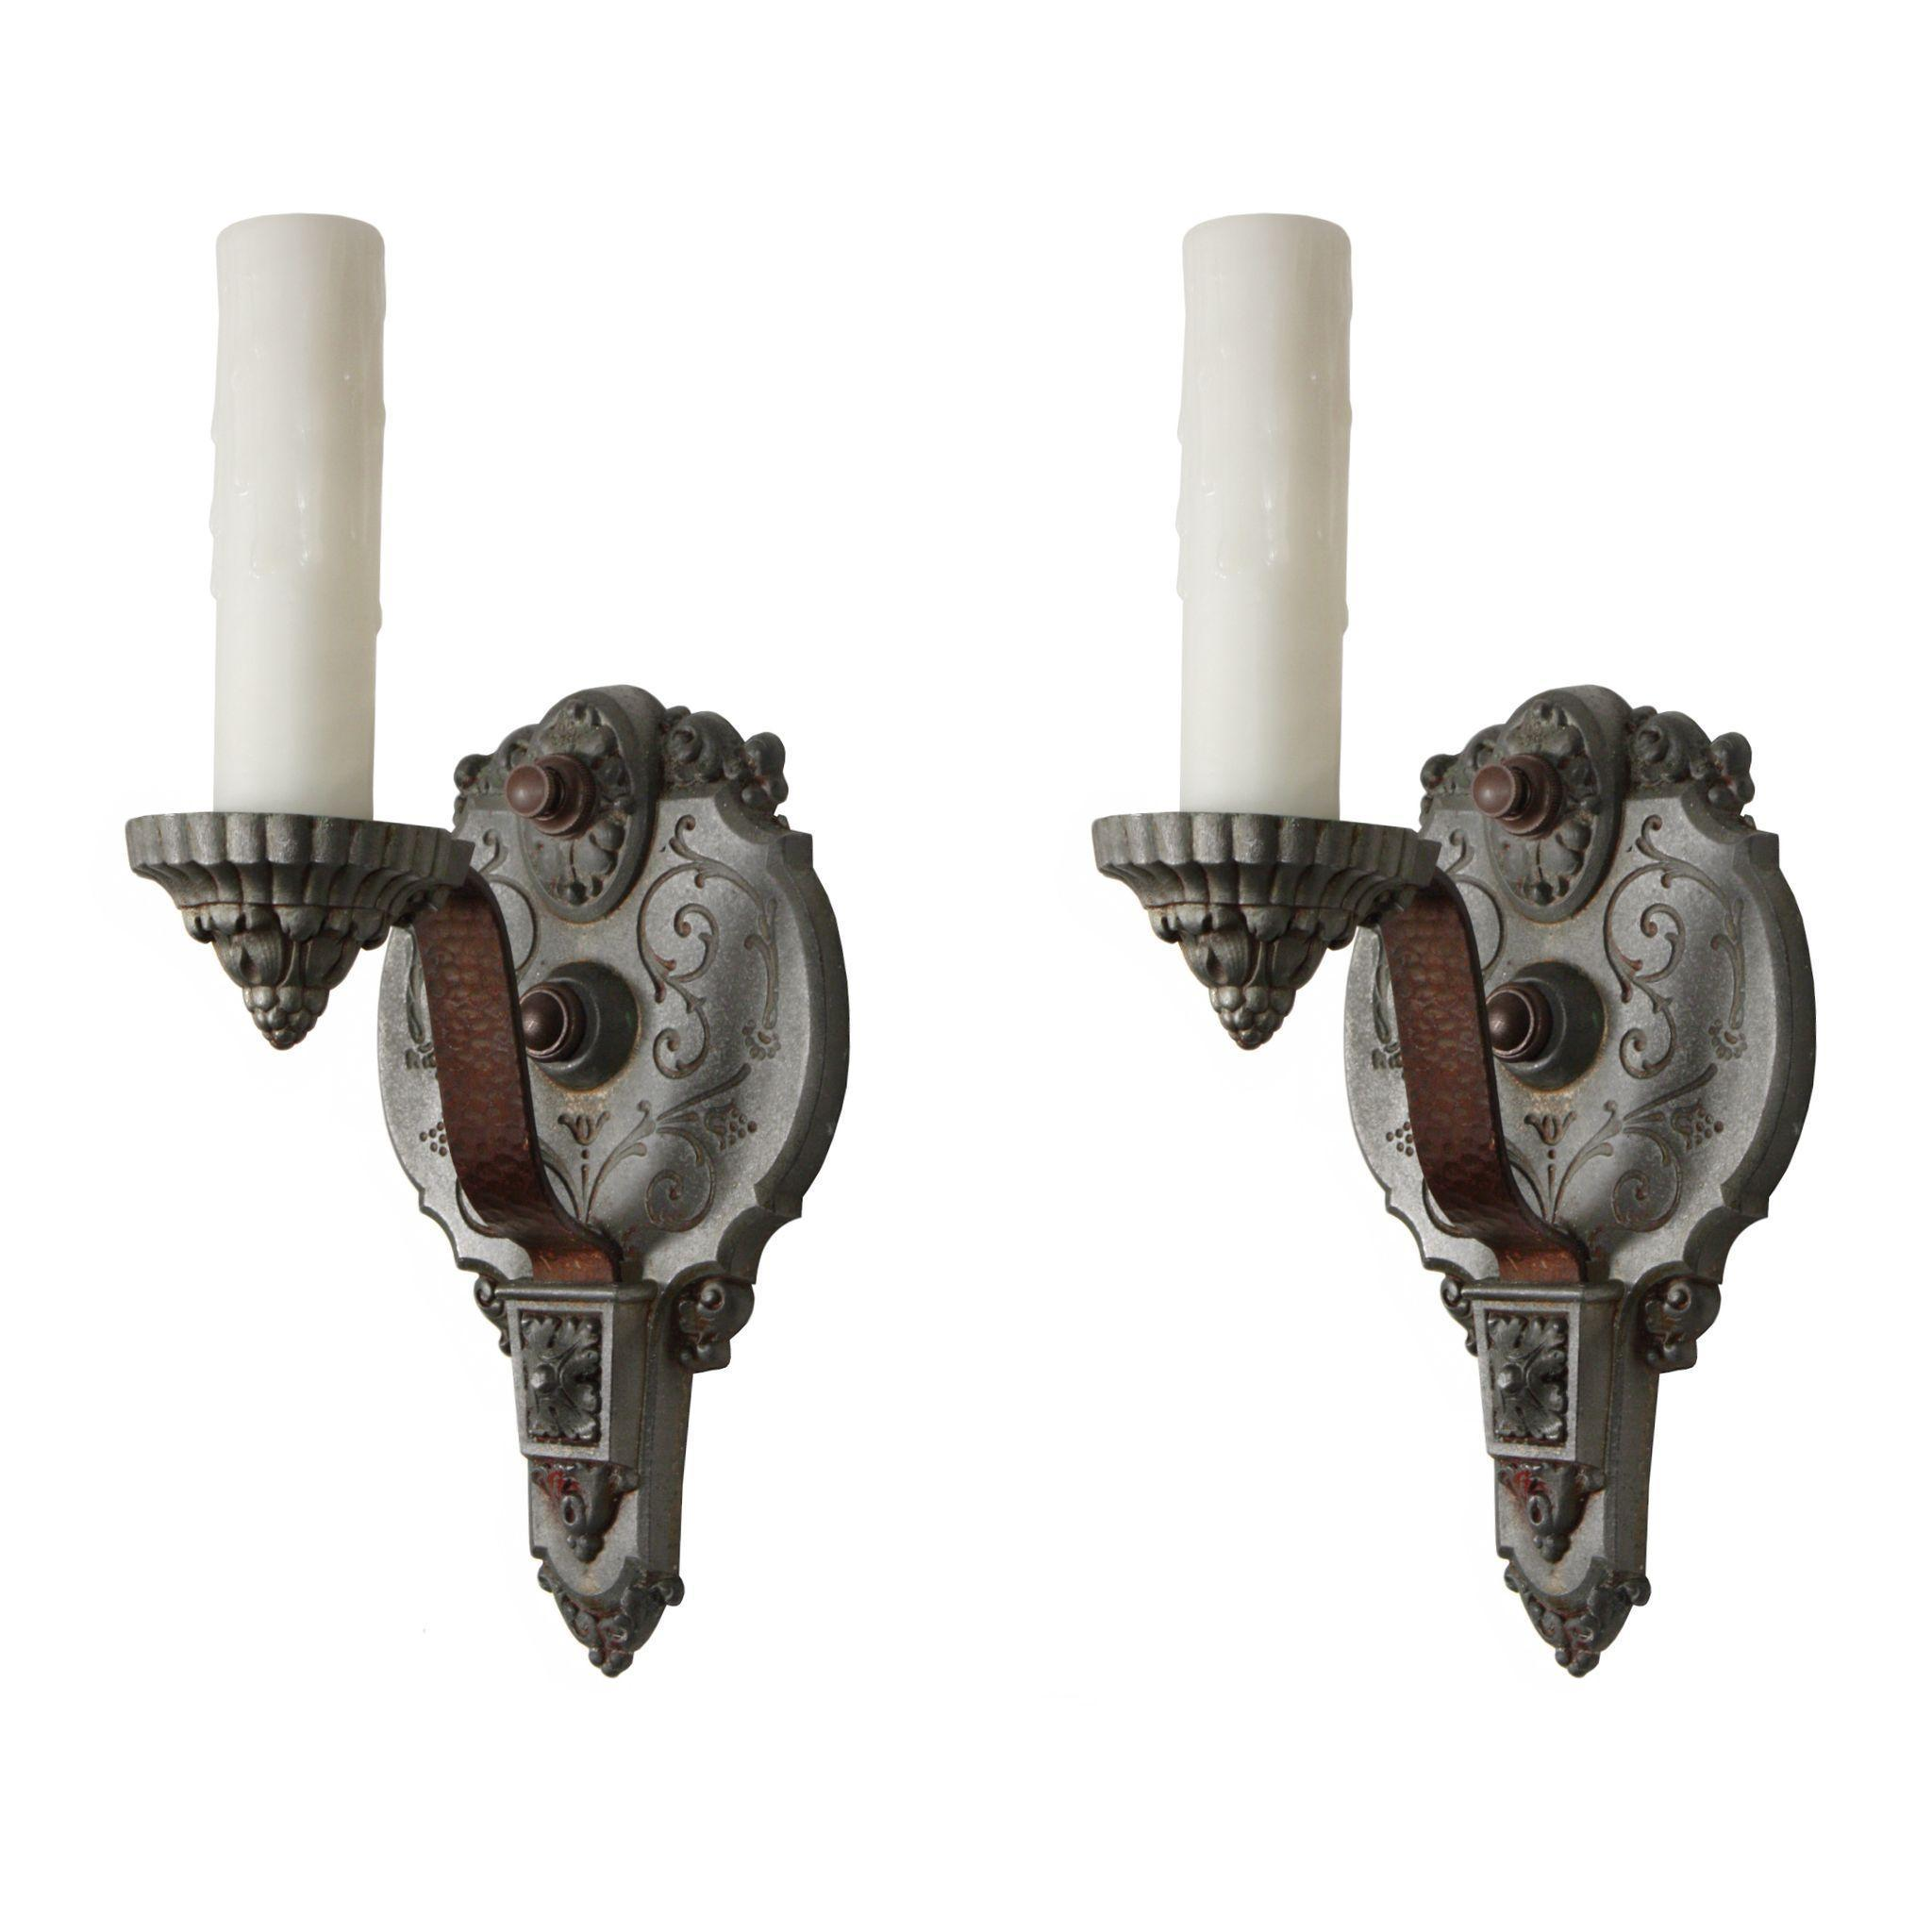 Charming Pair of Antique Single-Arm Sconces, Signed Riddle Co.